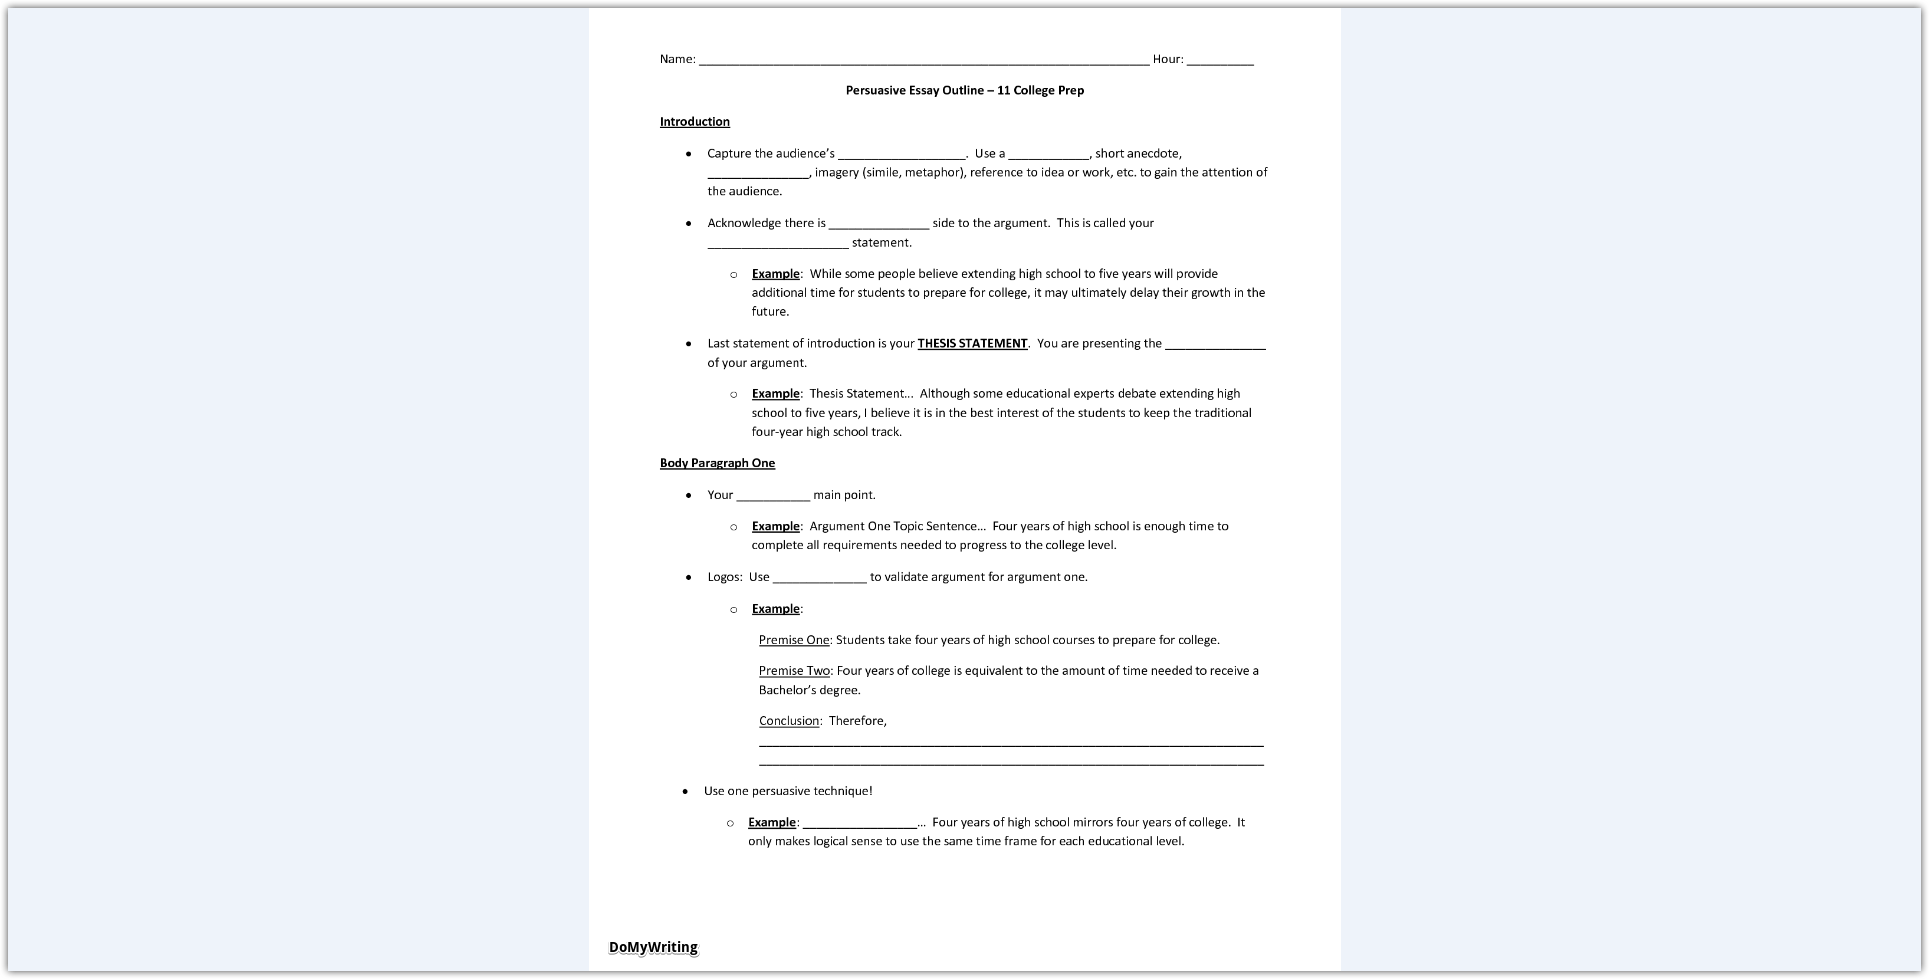 024 Persuasive Essay Outline Dreaded Speech Topics For Elementary Rubric 10th Grade Full